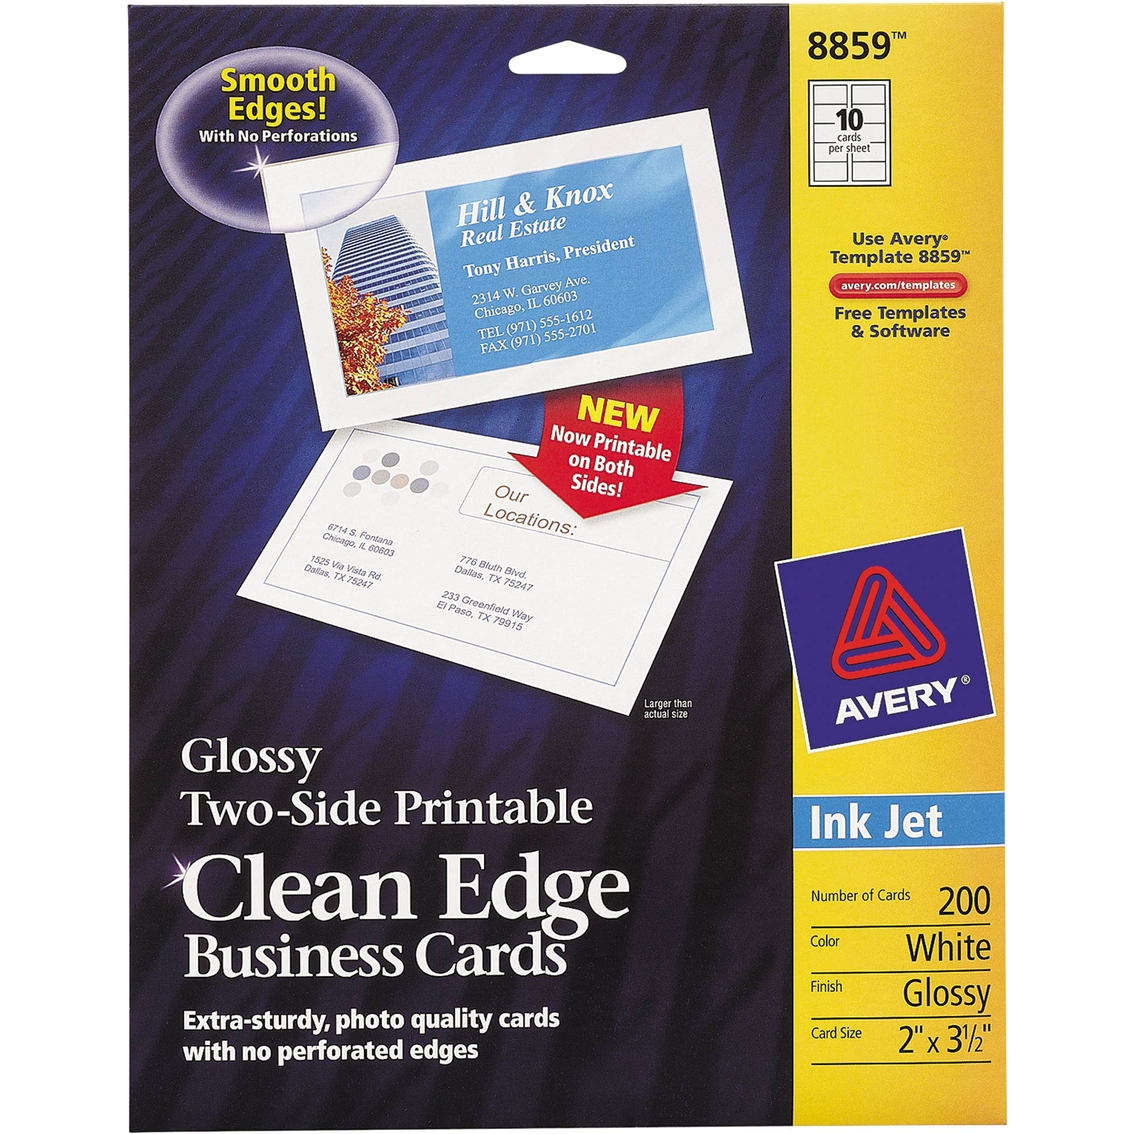 Avery two sided clean edge business cards for inkjet printers 200 pk avery two sided clean edge business cards for inkjet printers 200 pk colourmoves Images